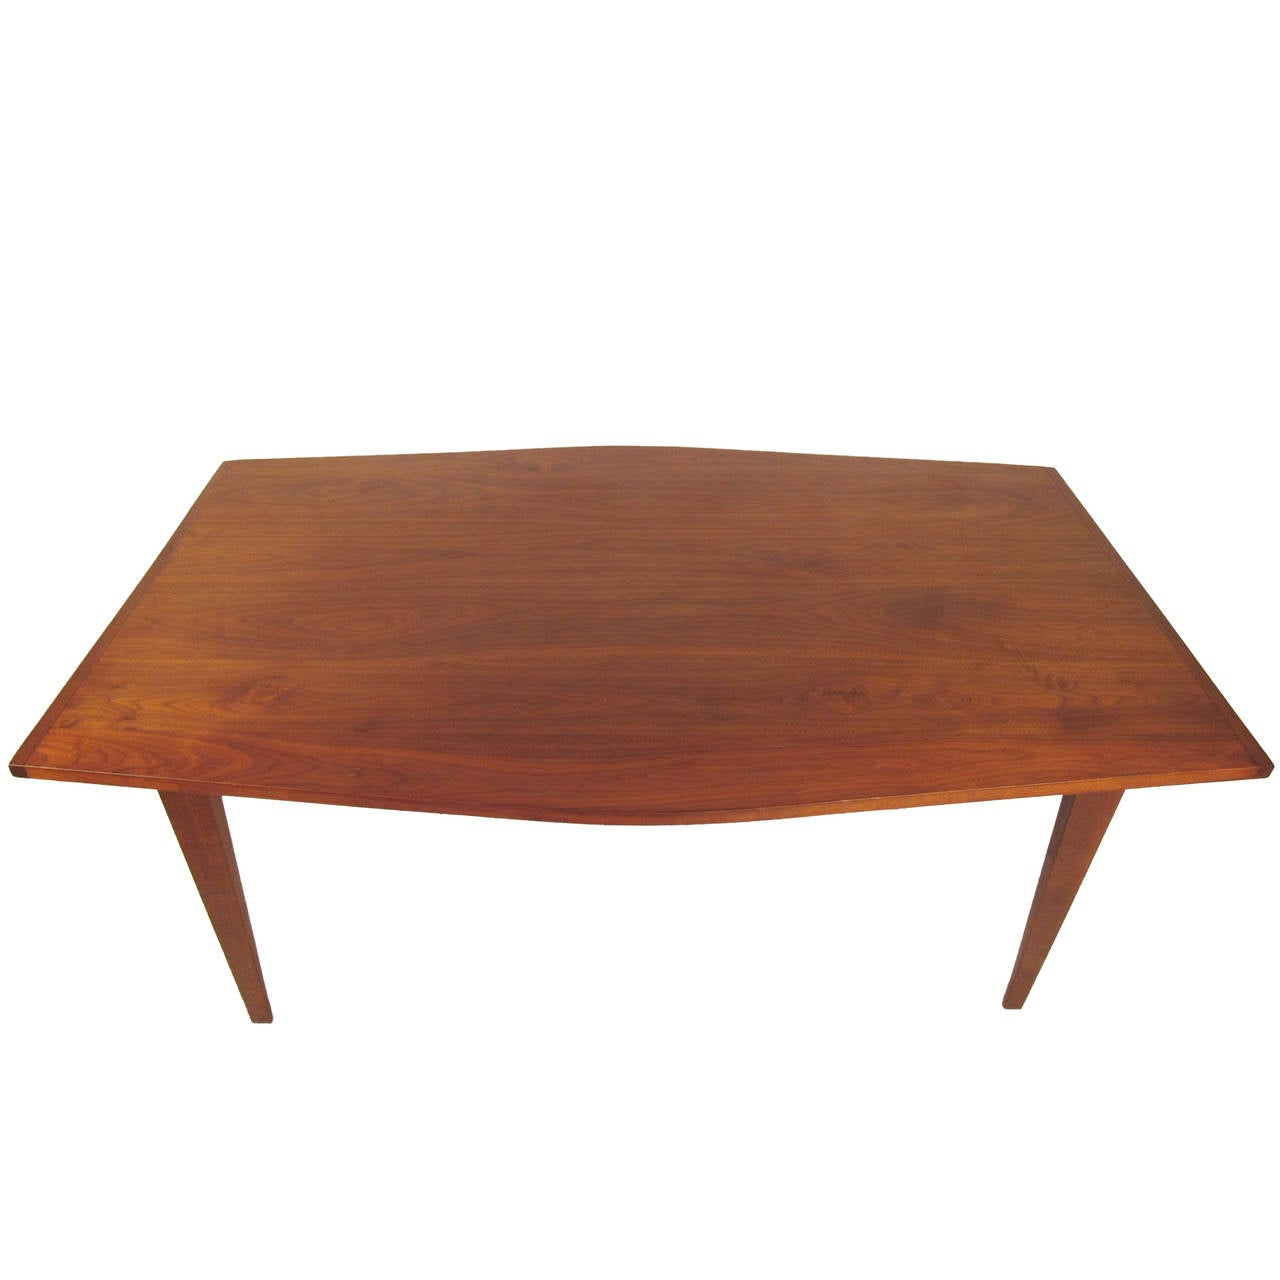 Mid century modern angled dining table for sale at 1stdibs for Modern dining tables sale